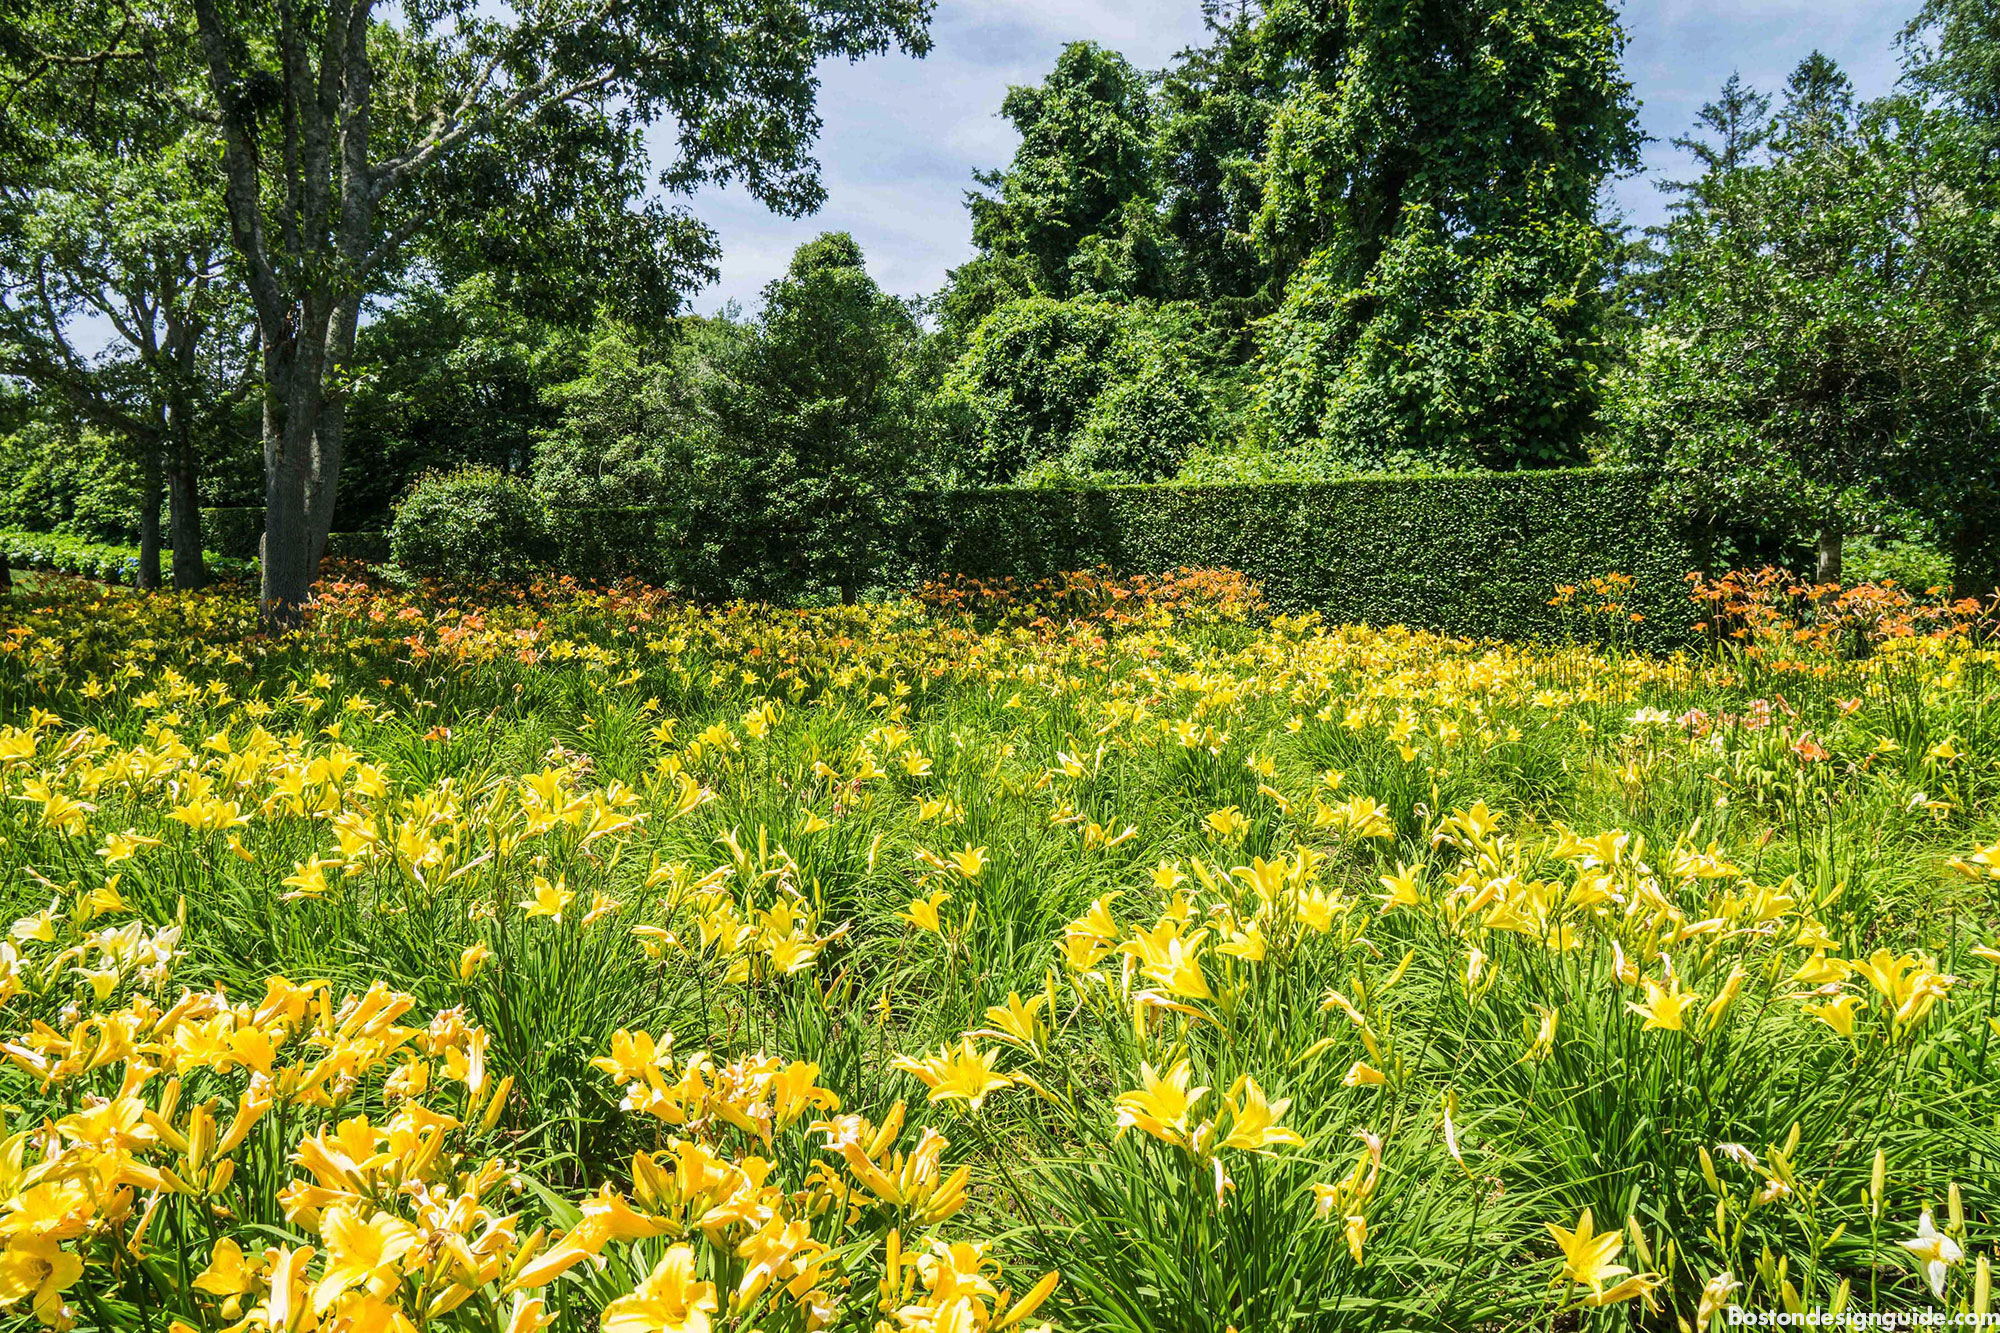 Sustainable garden of daylilies by Kimberly Mercurio Landscape Architecture